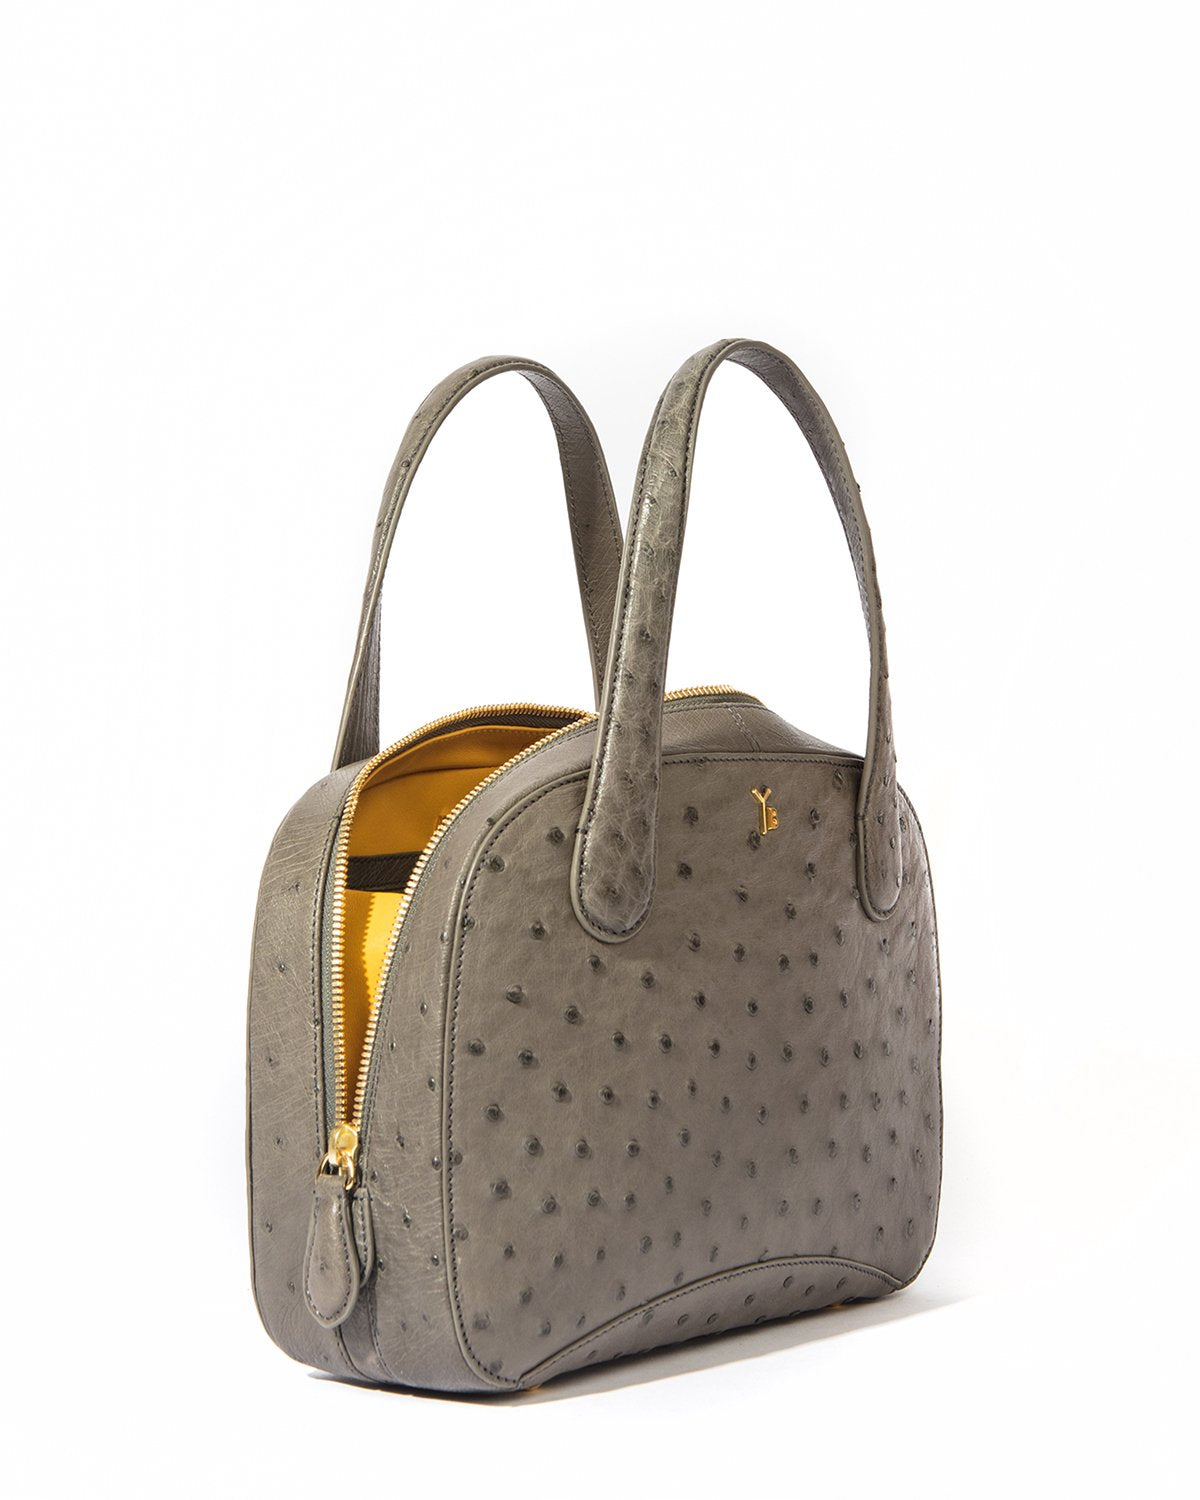 Brown Ostrich Tote Bag by Yara Bashoor Angle Image Yellow Interior